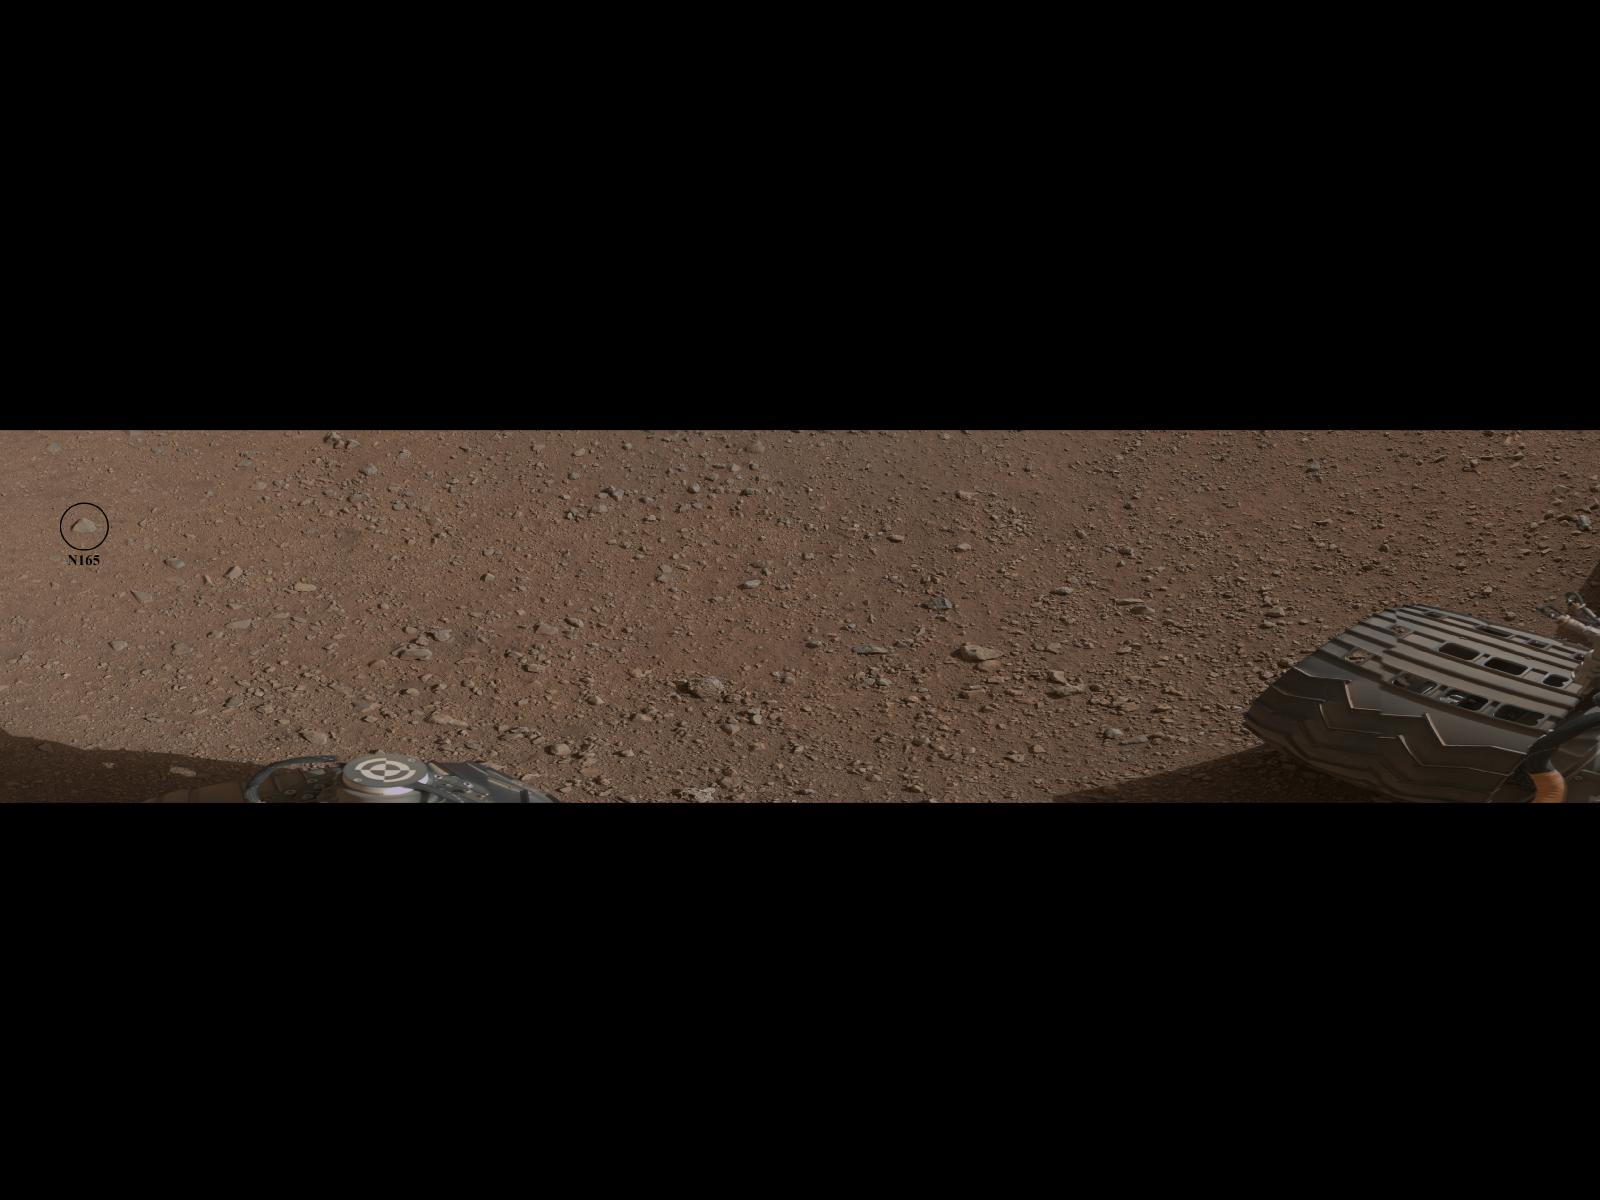 rock on mars by rover - photo #28